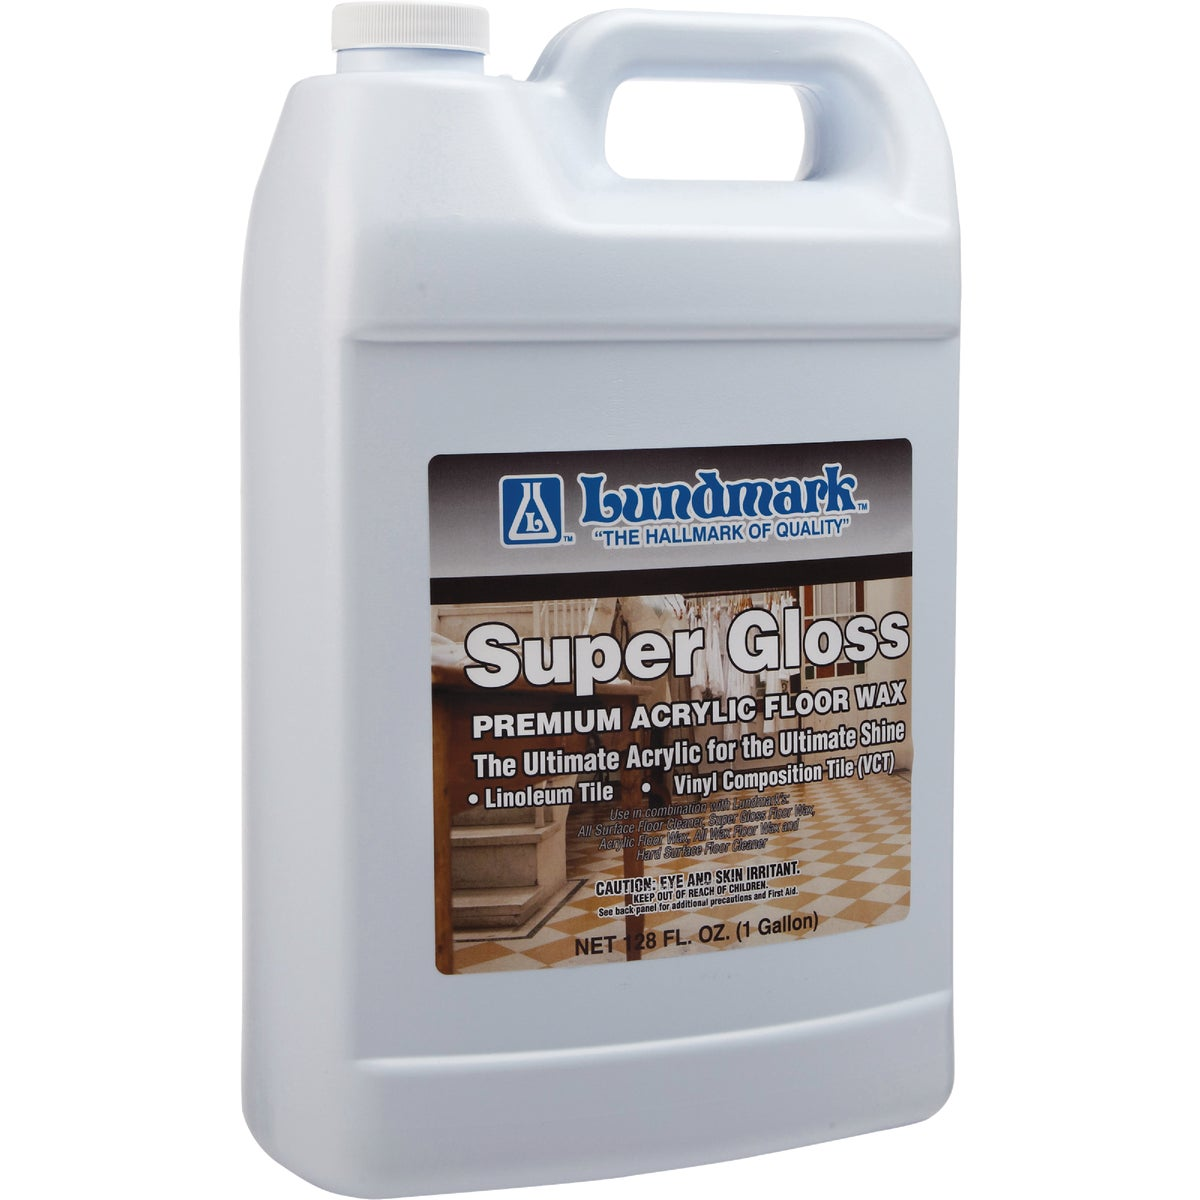 GALLON SUPER GLOSS - 3202G01-2 by Lundmark Wax Co